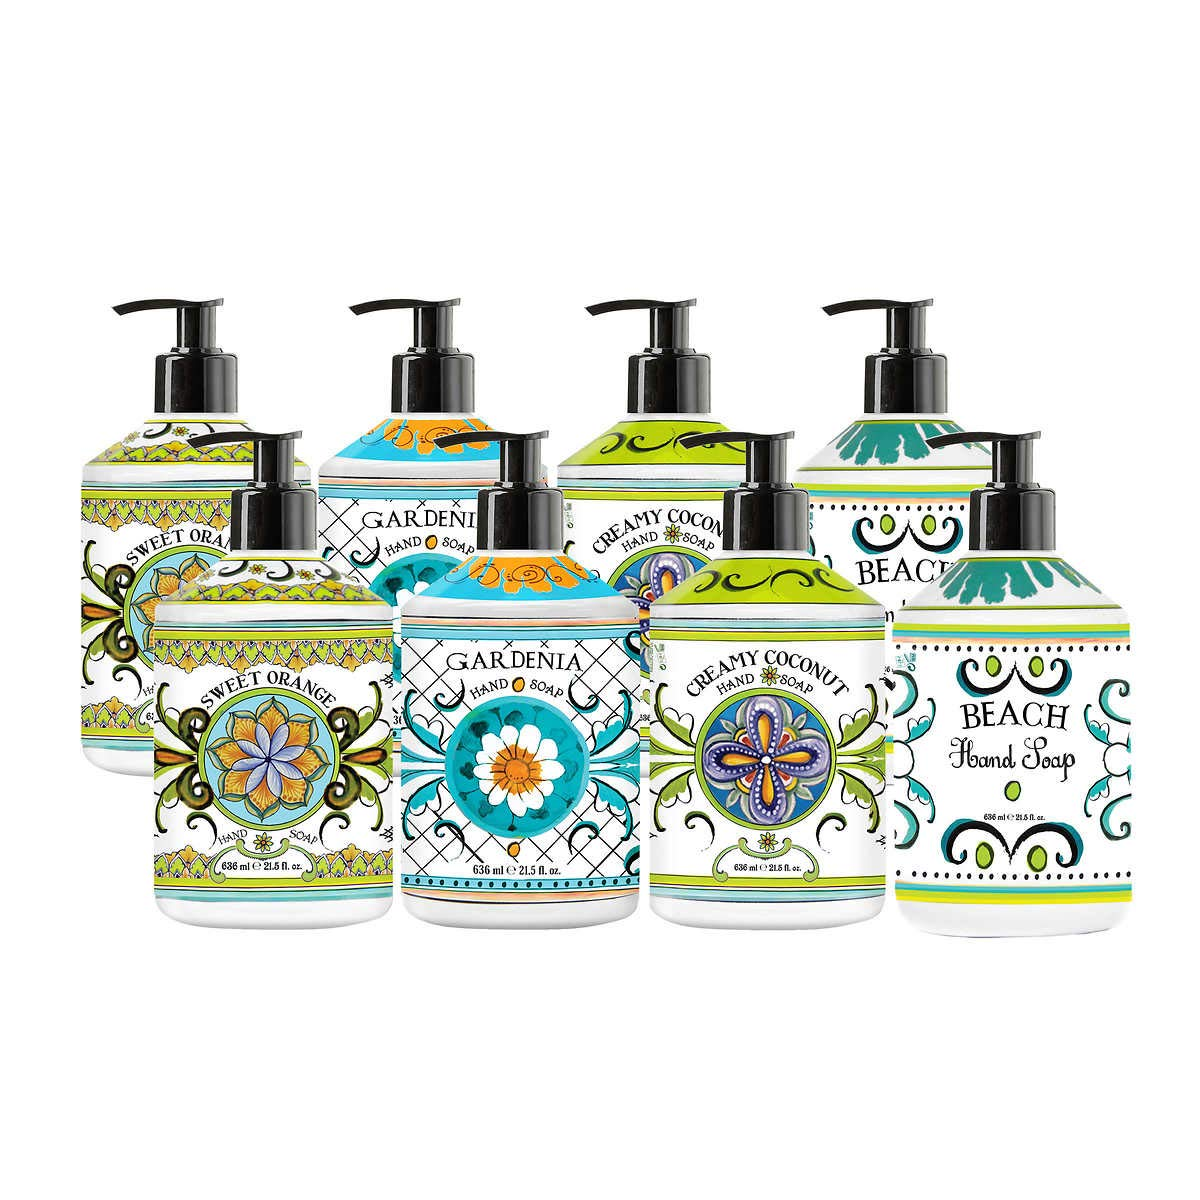 Evaxo La Tasse Hand Soap, 8-pack Scents: (2) Sweet Orange, (2) Gardenia, (2) Creamy Coconut, (2) Beach Rich Lather Free Rinsing Formulation that Moisturizes the Skin While Gently Cleansing.#B